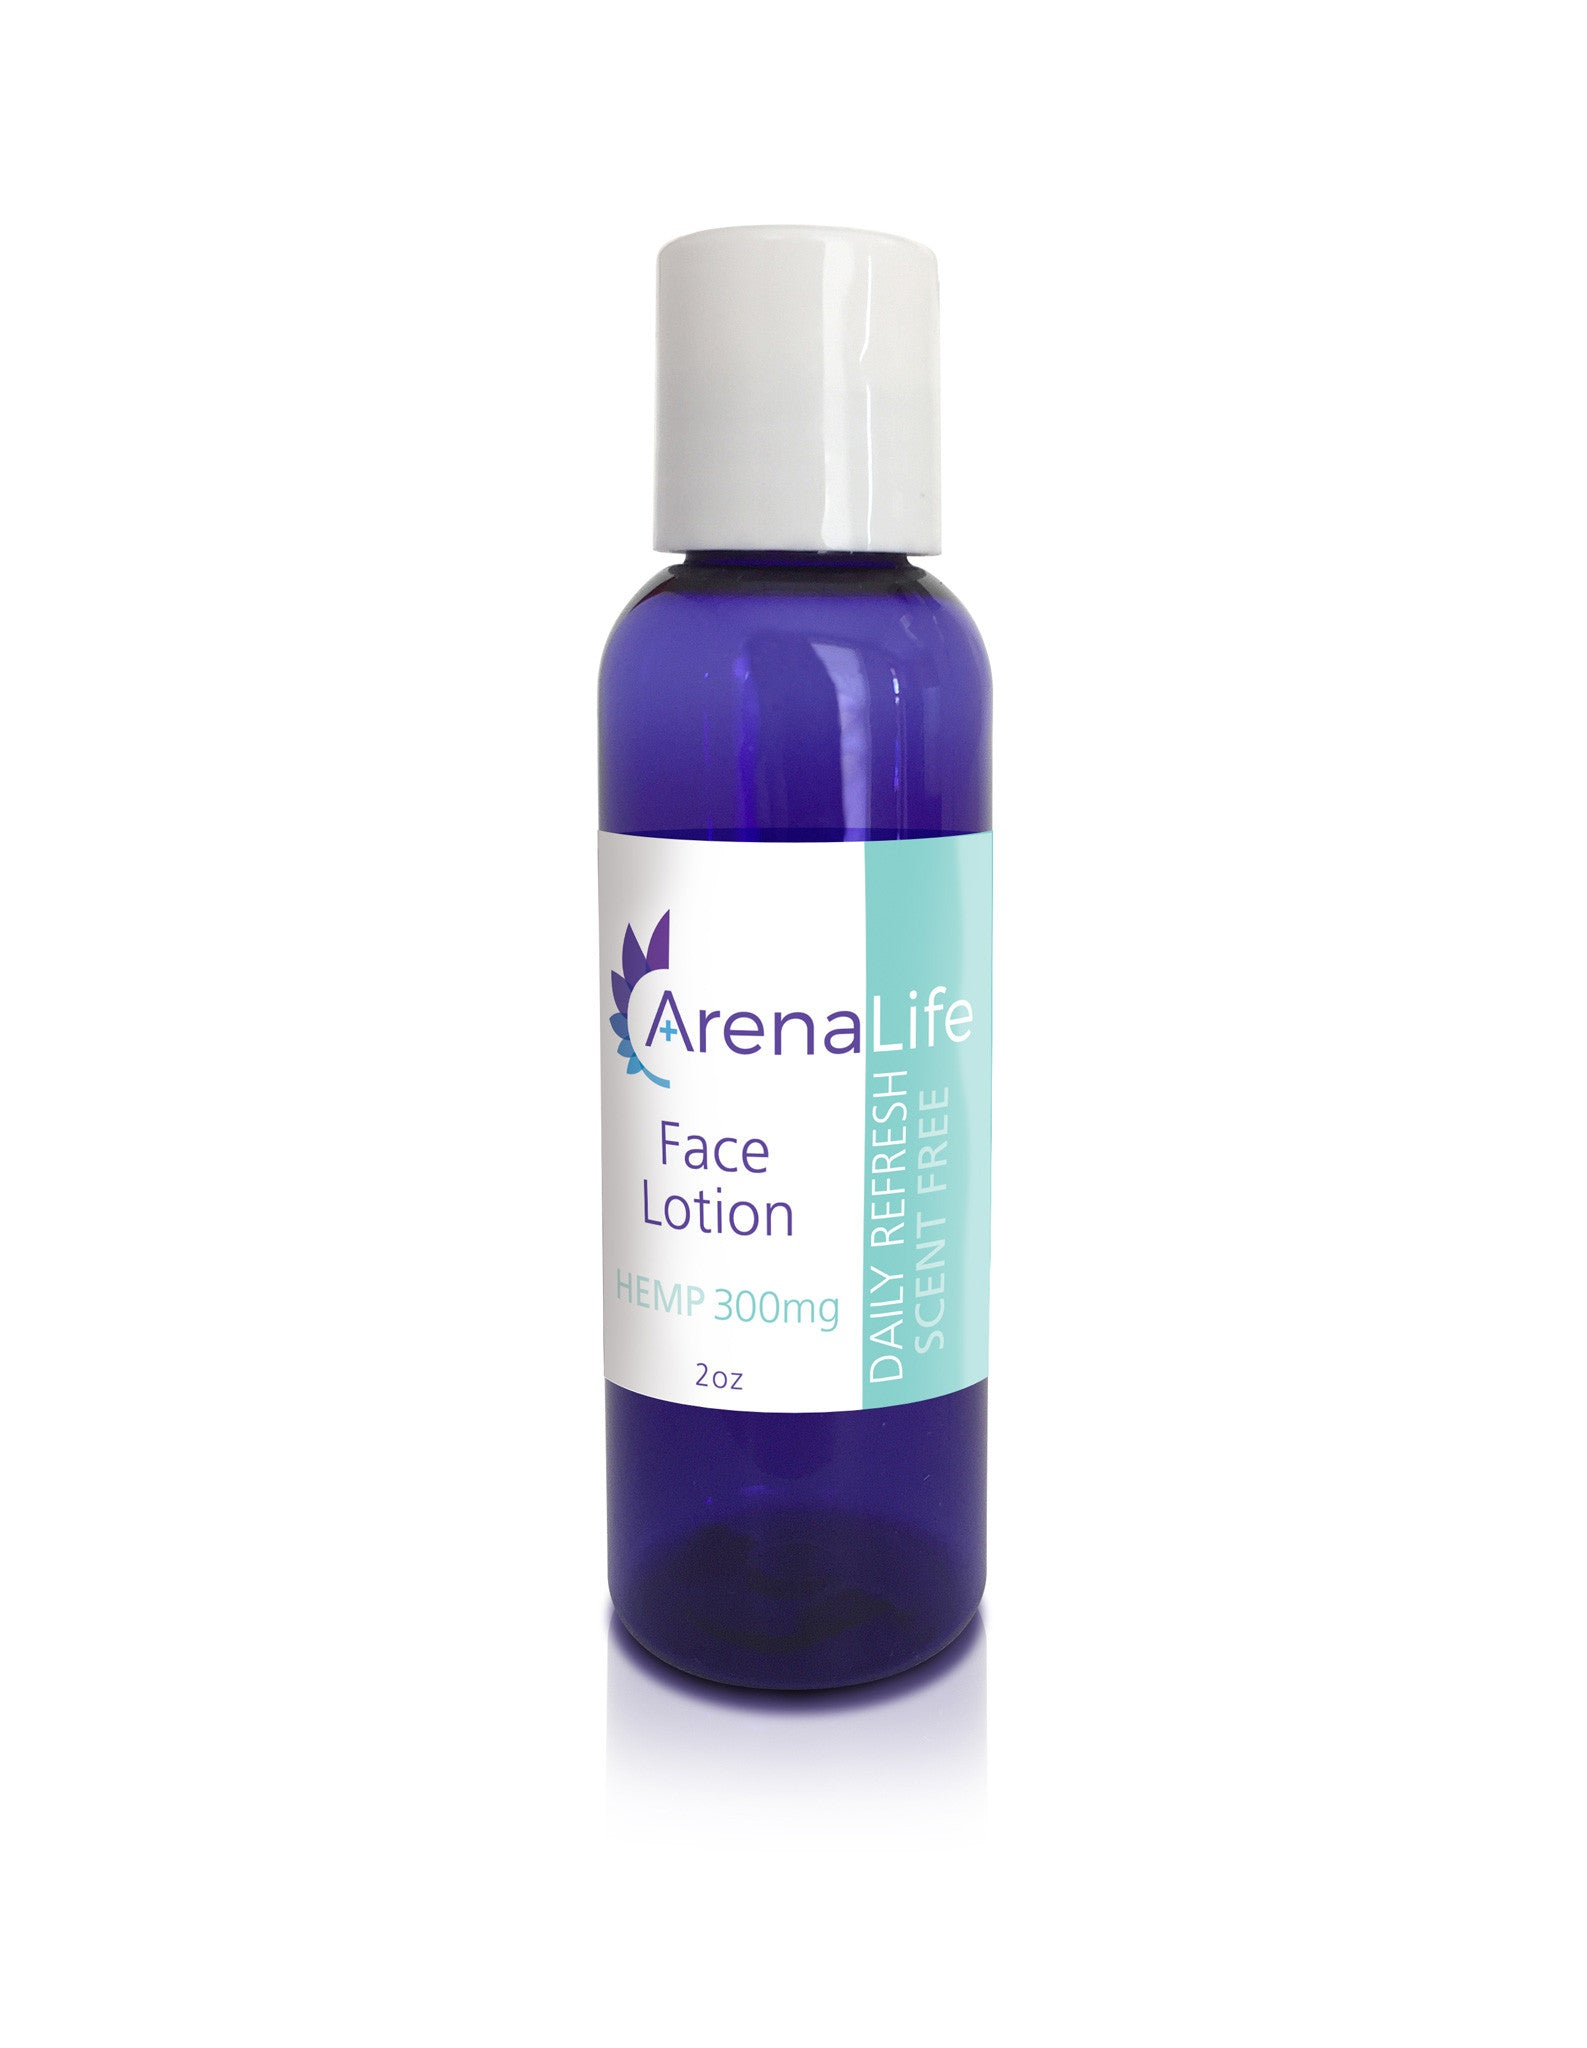 COMING SOON! Face Lotion with Anti-Aging Components